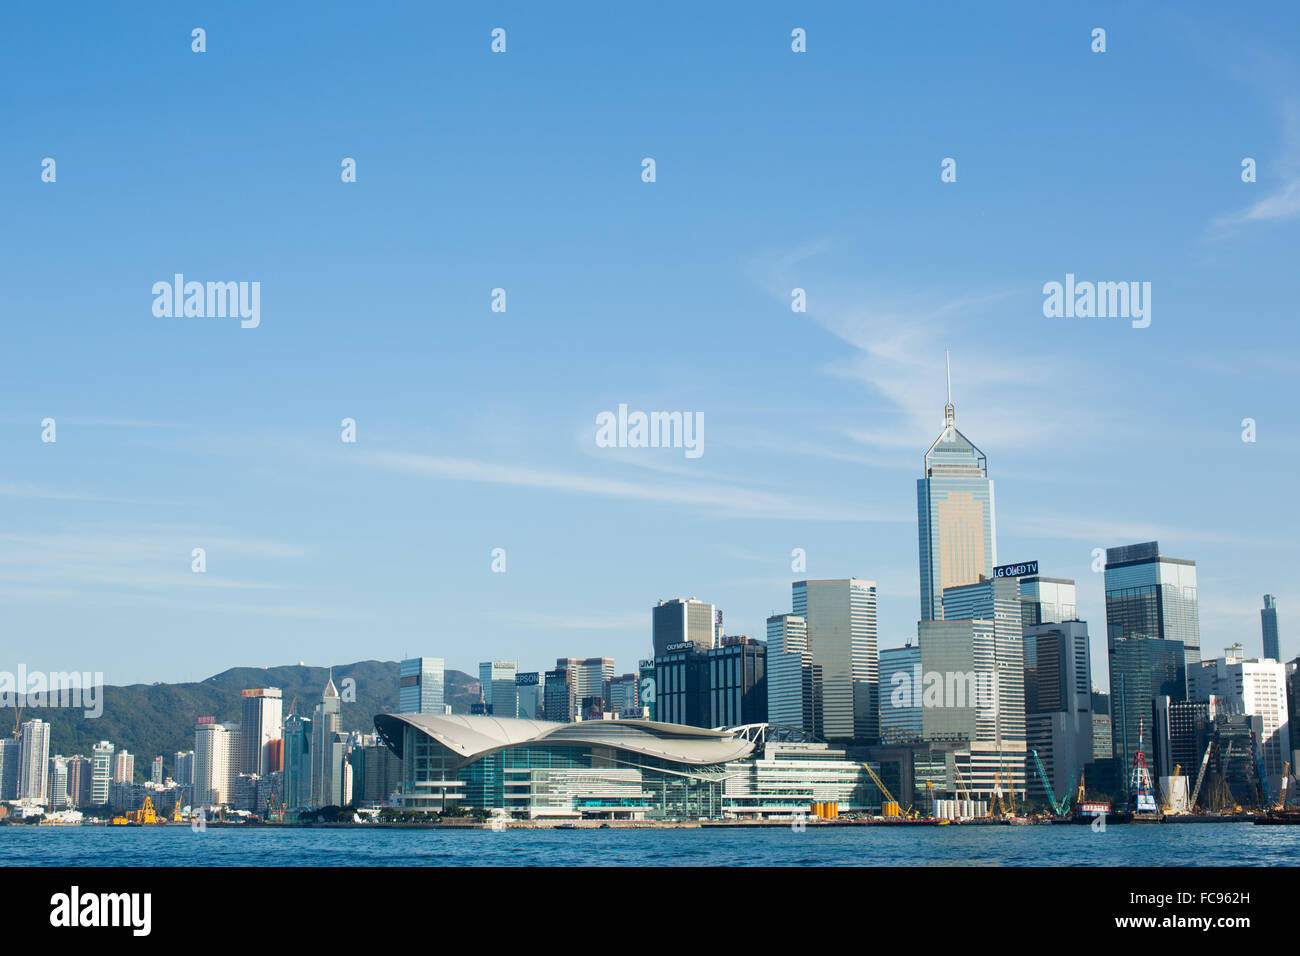 Horizon de Hong Kong pris de Kowloon, Hong Kong, Chine, Asie Photo Stock